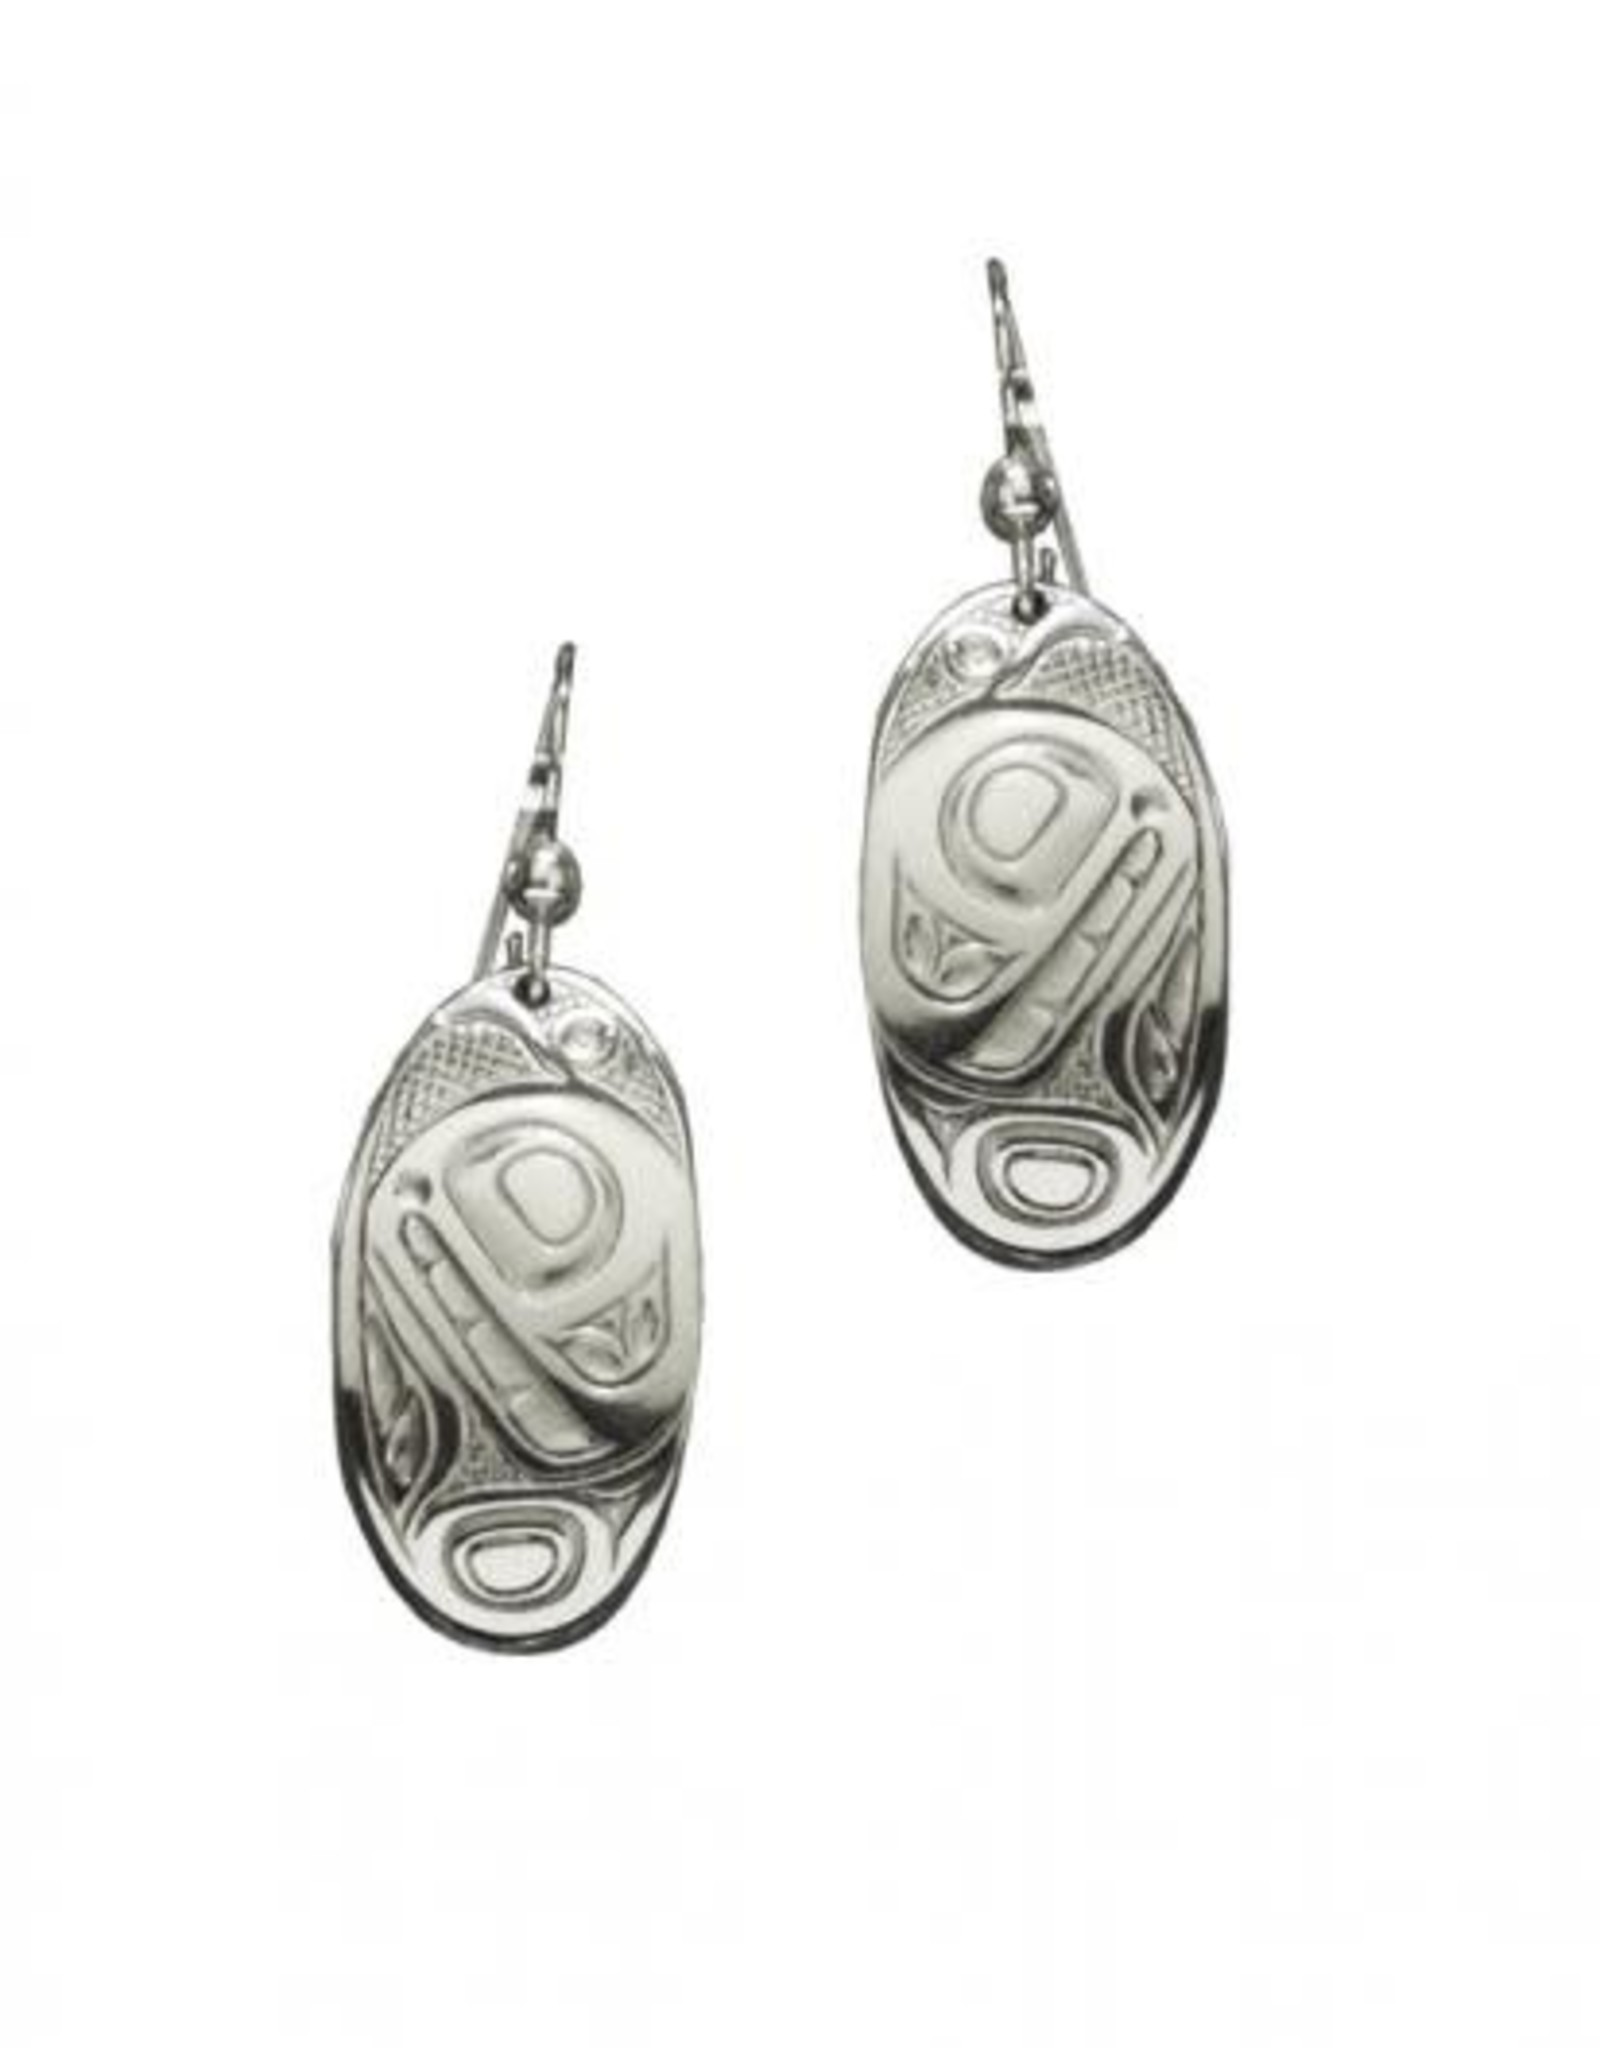 Silver Pewter Oval Orca Earrings by Bill Helin